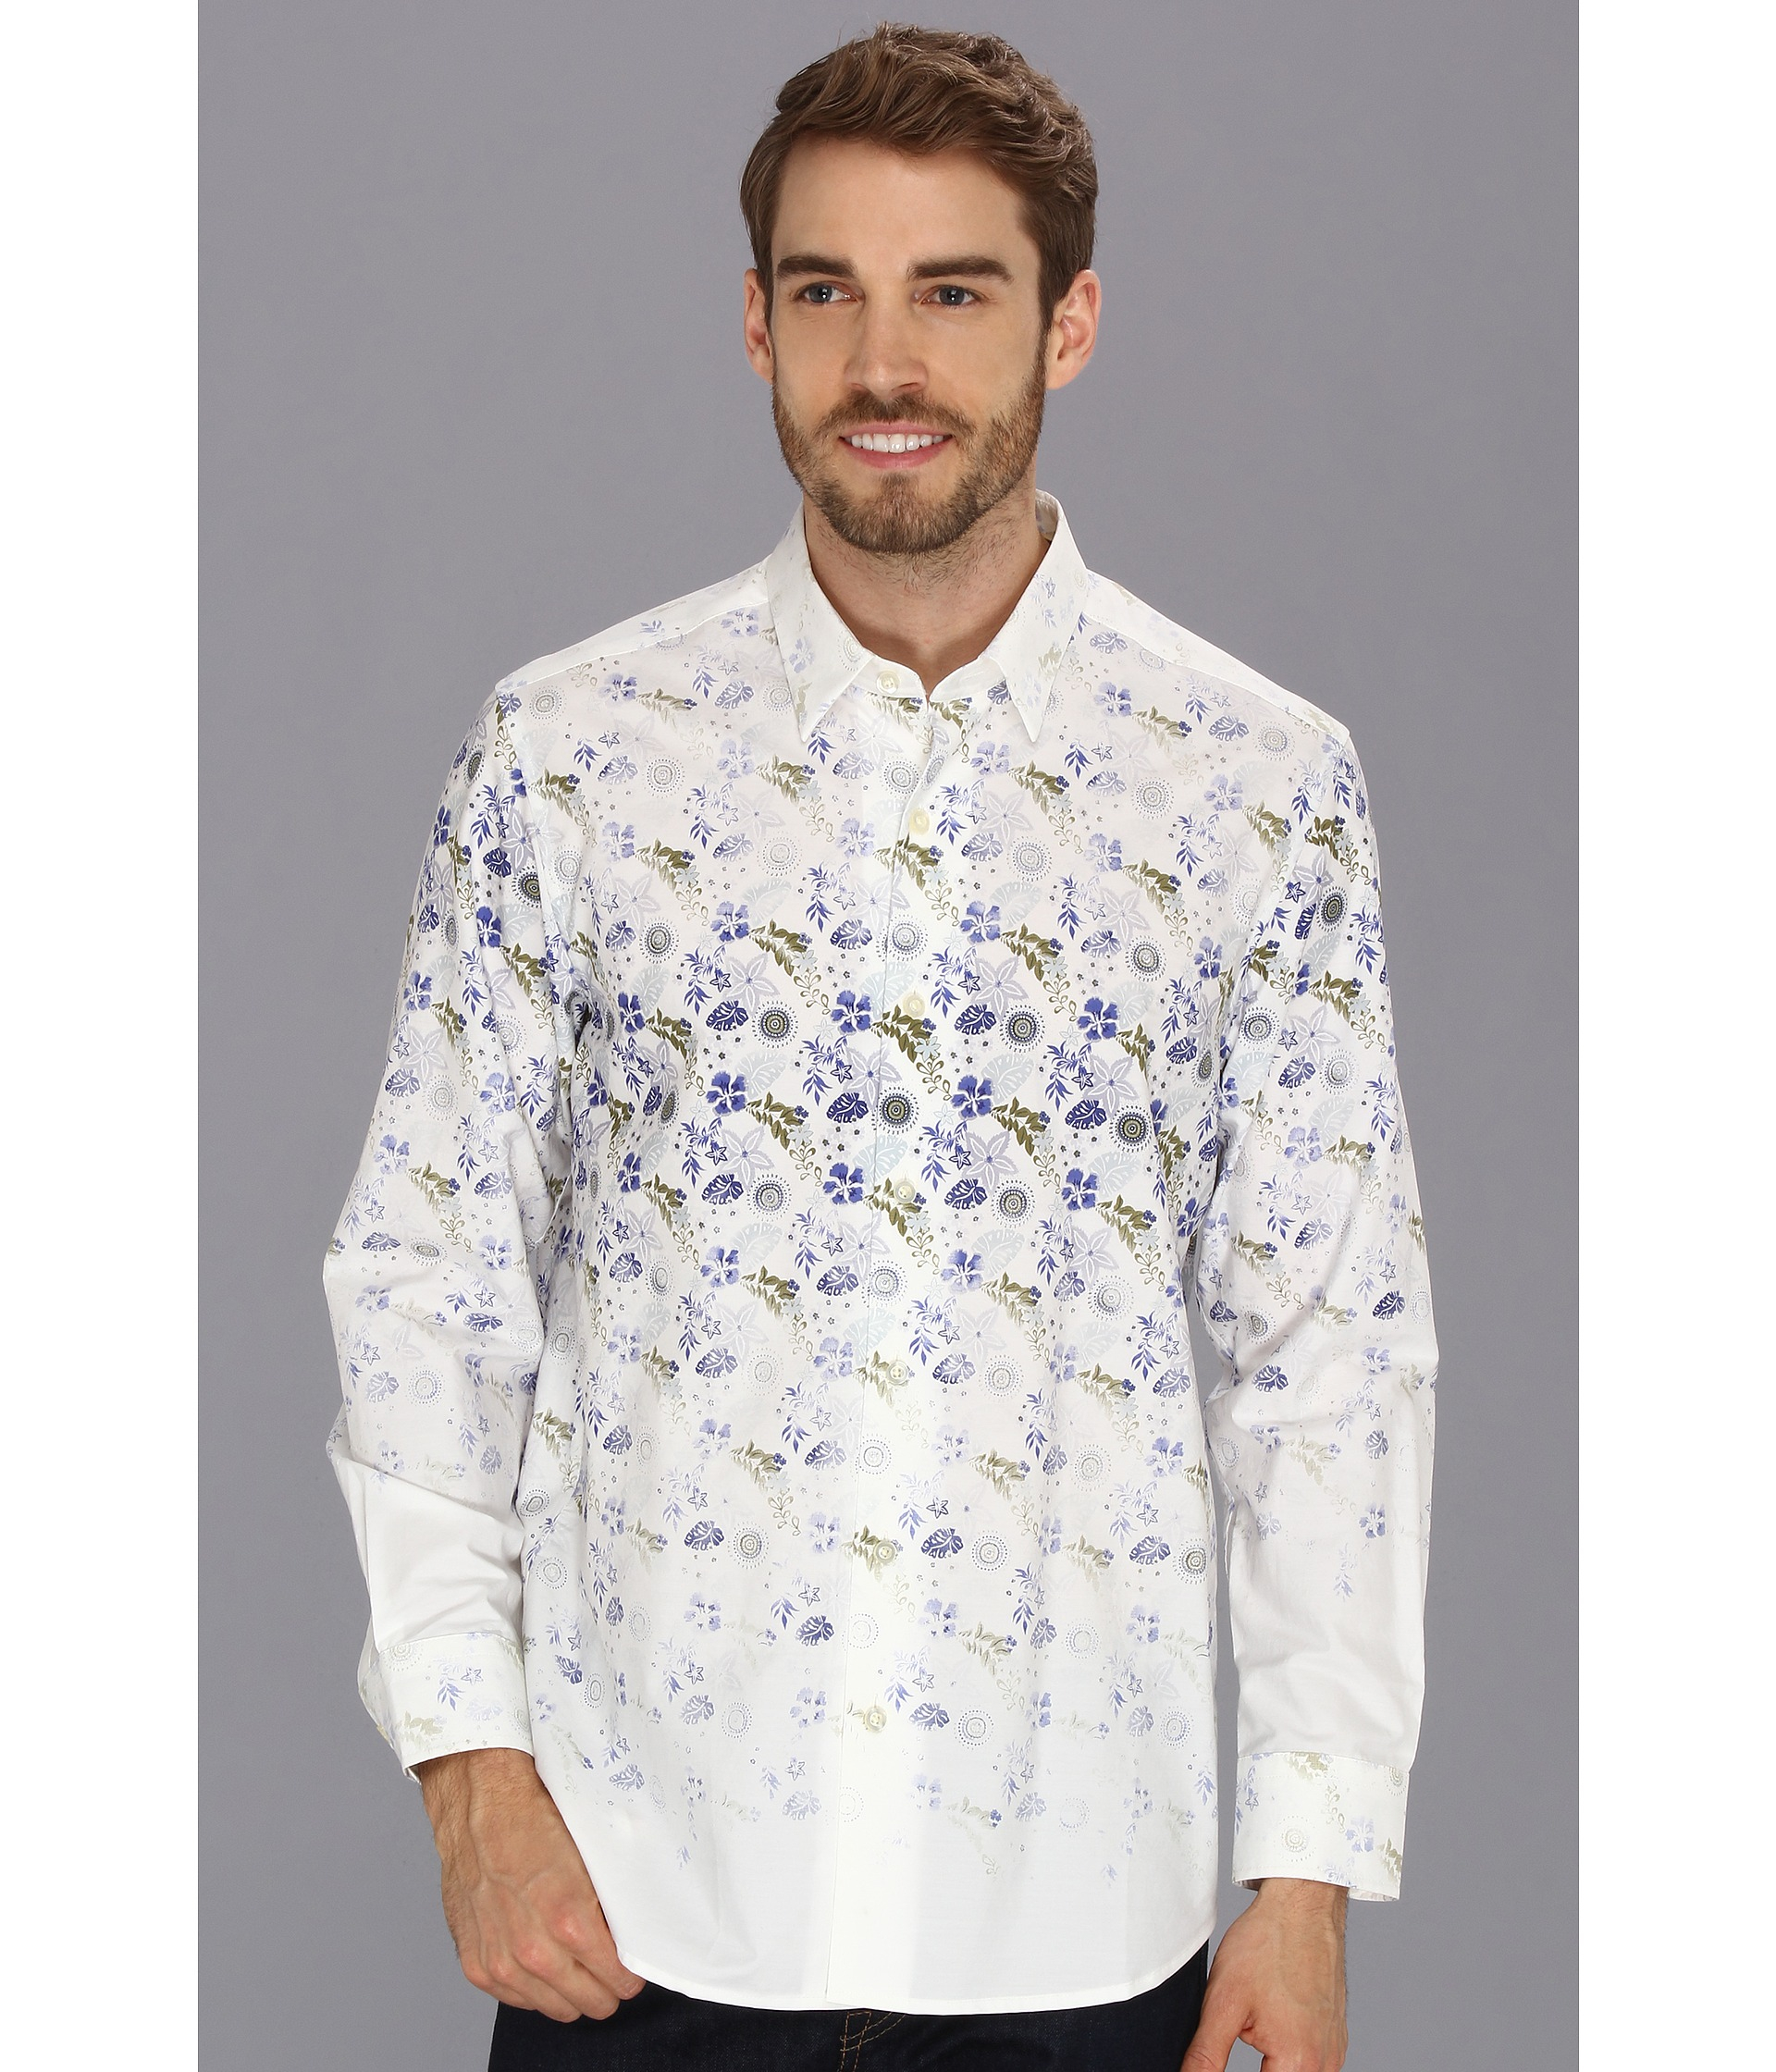 Tommy bahama flamenco floral ls shirt in white for men for Tommy bahama christmas shirt 2014